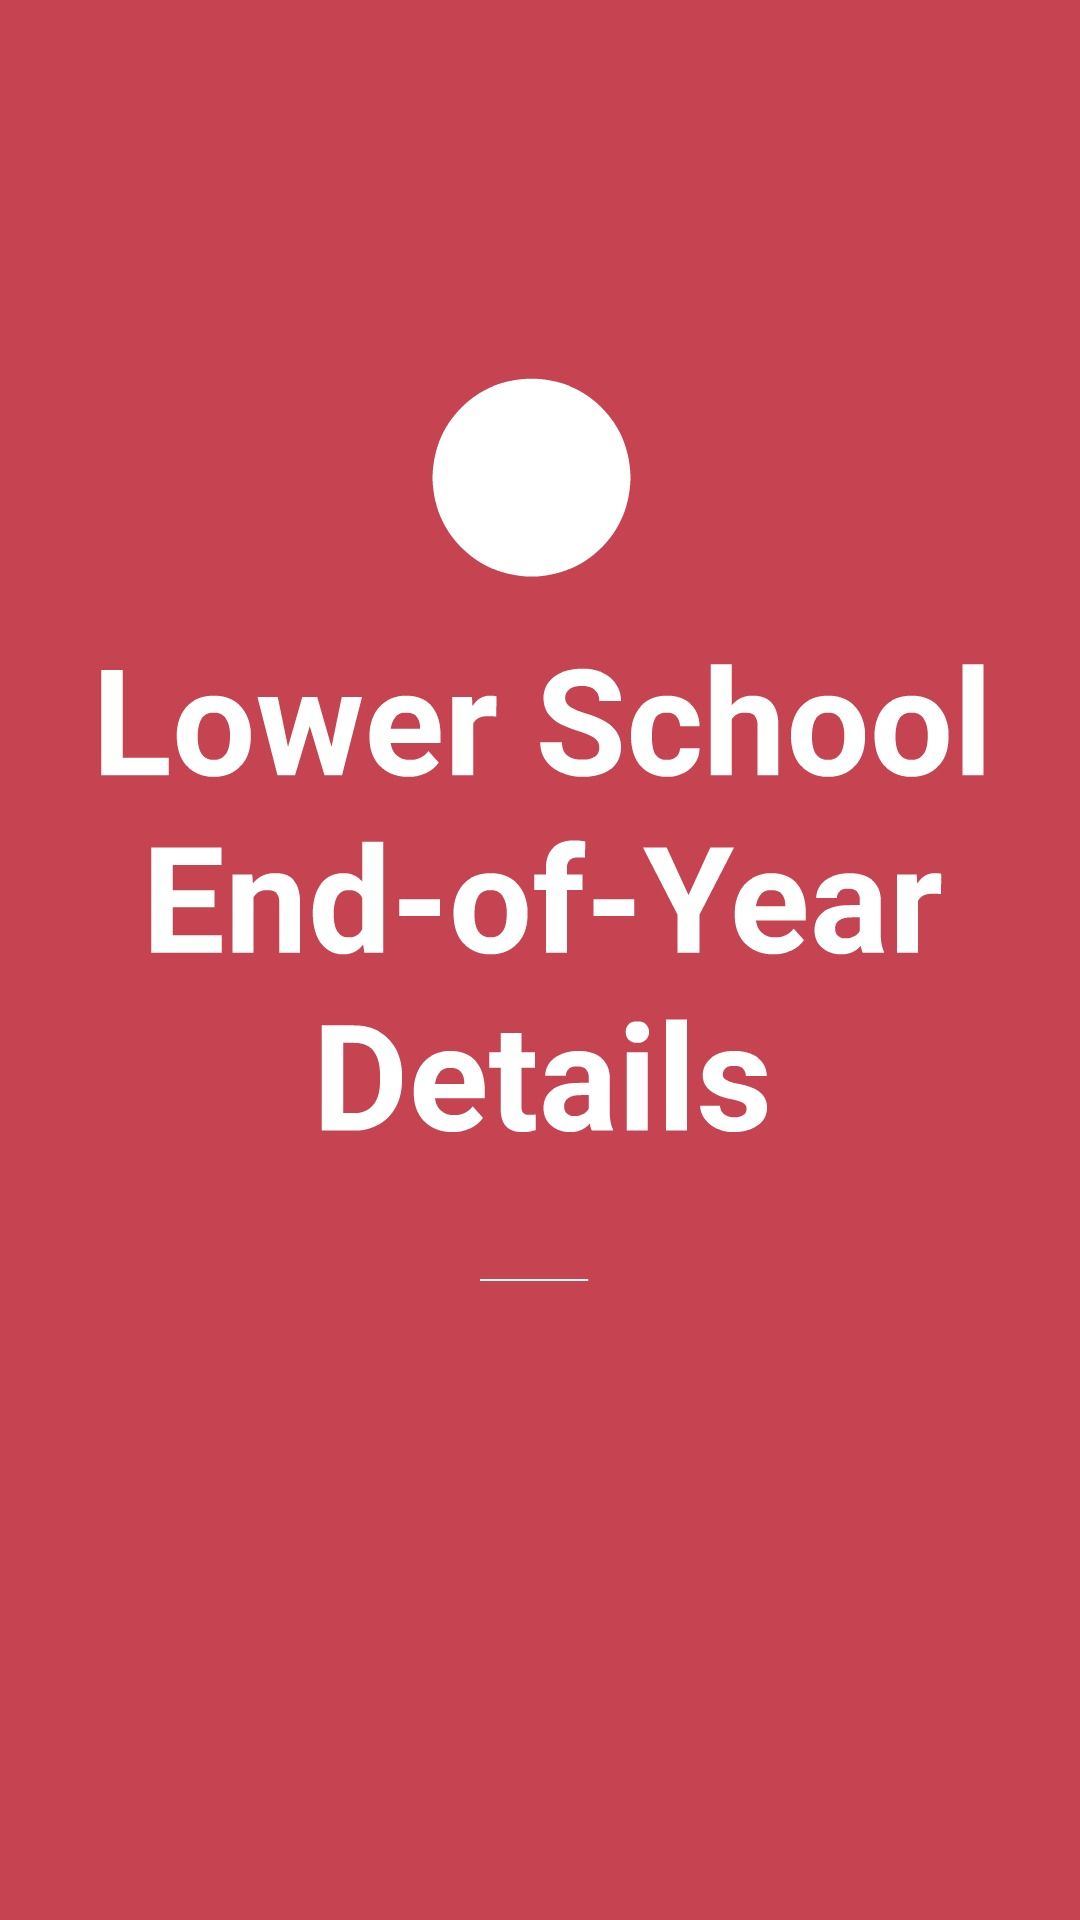 Lower School End-of-Year Details